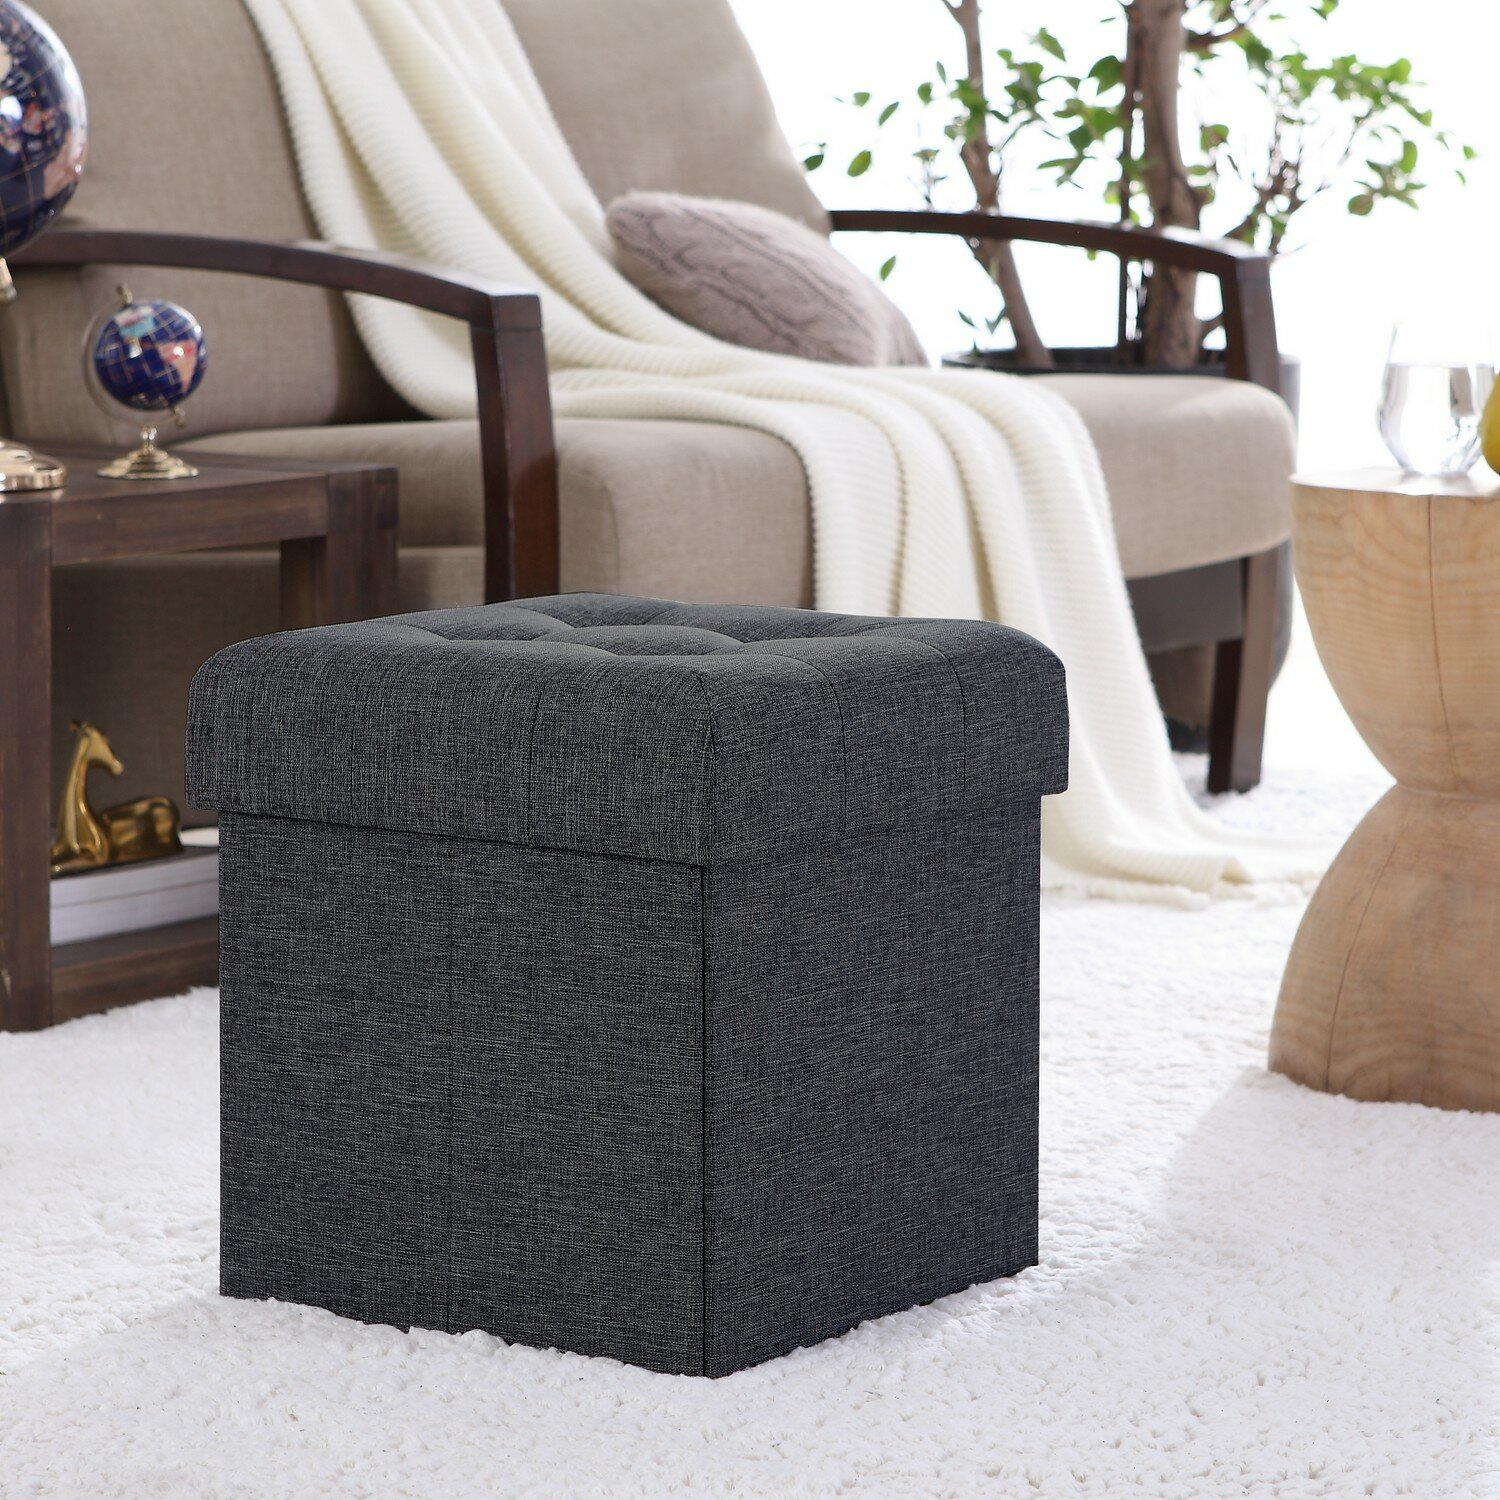 Home Furniture Diy Footstool Pouffe Stool Cushion Ottoman Square Upholstered Chair Seat Desmoinesfencecompany Com